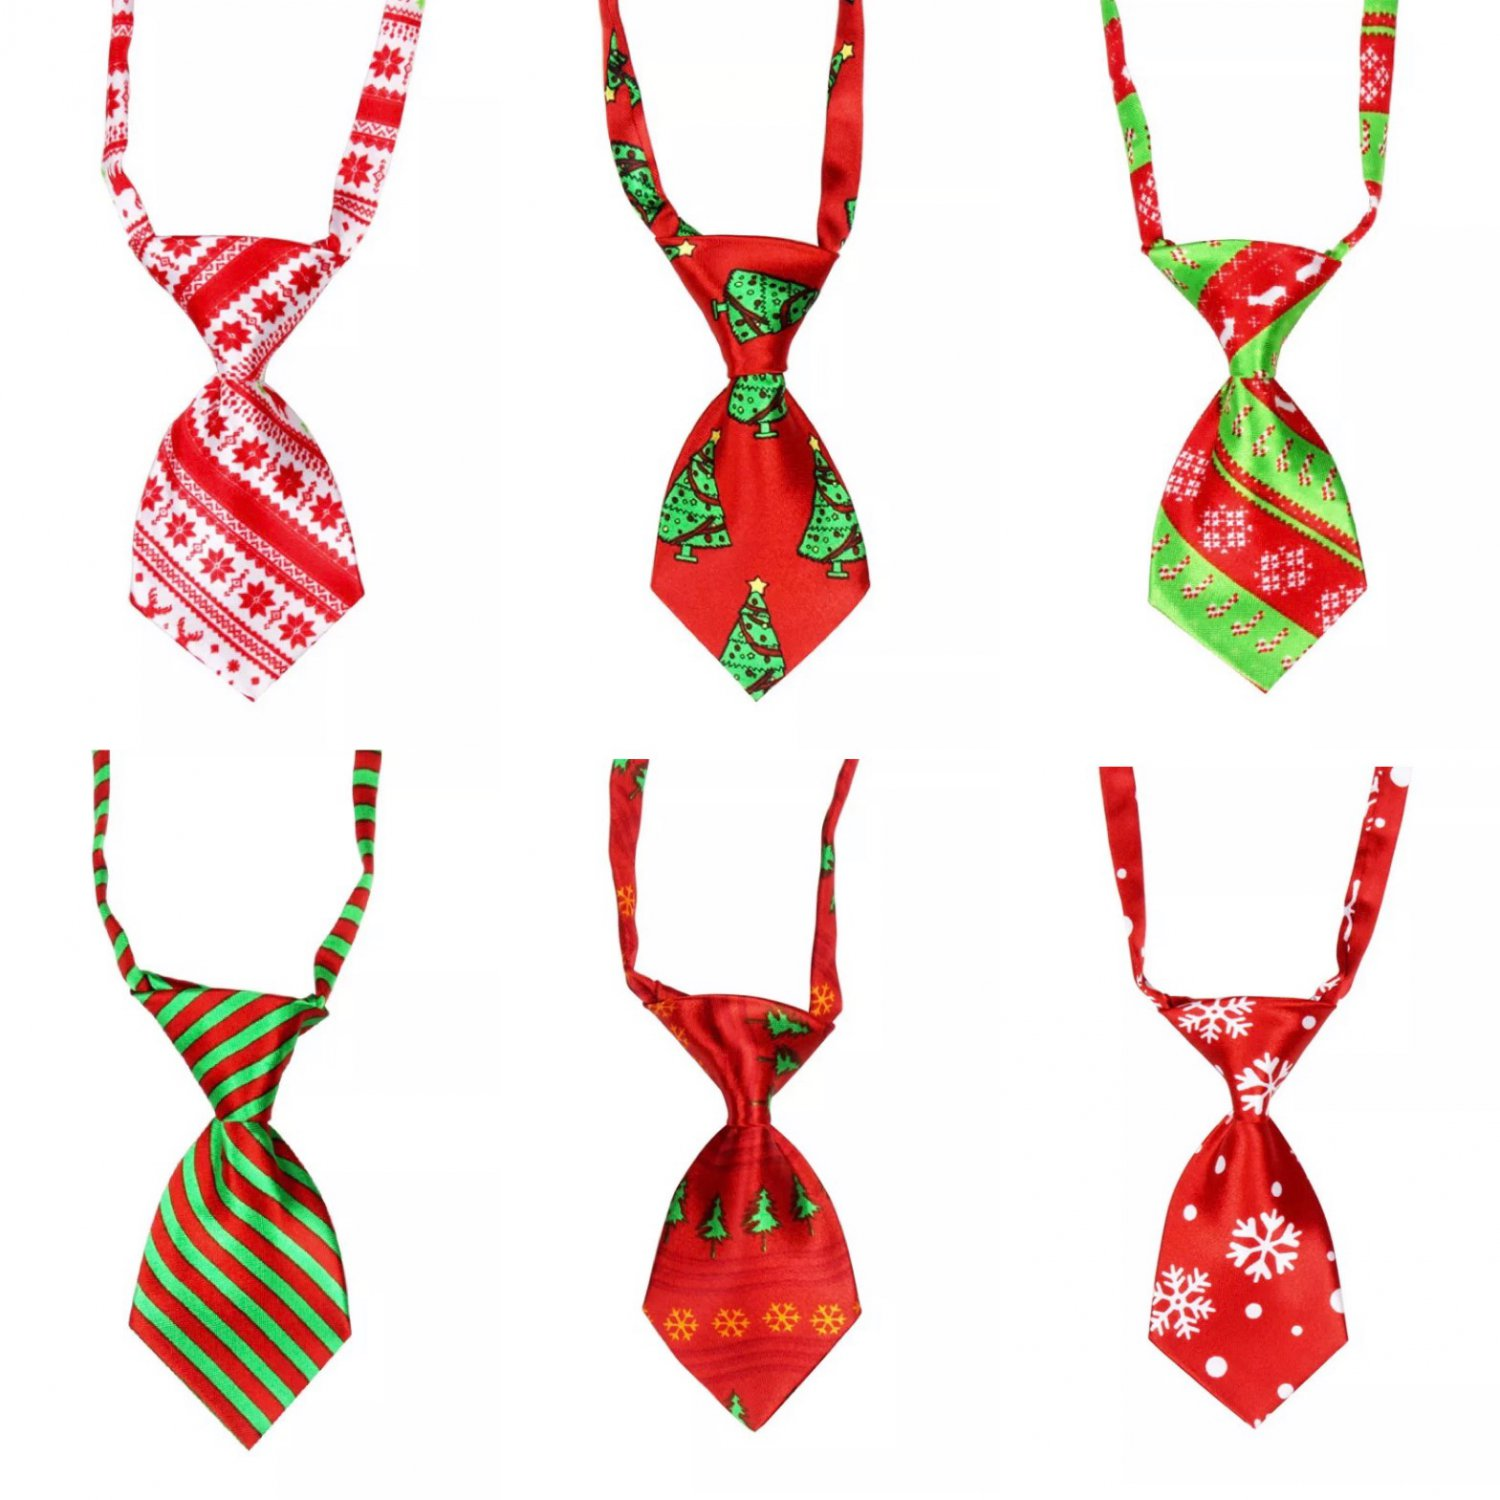 Christmas Pet Adjustable Neck Tie Holiday Necktie Holiday Party Grooming Bow Tie Collar Accessory